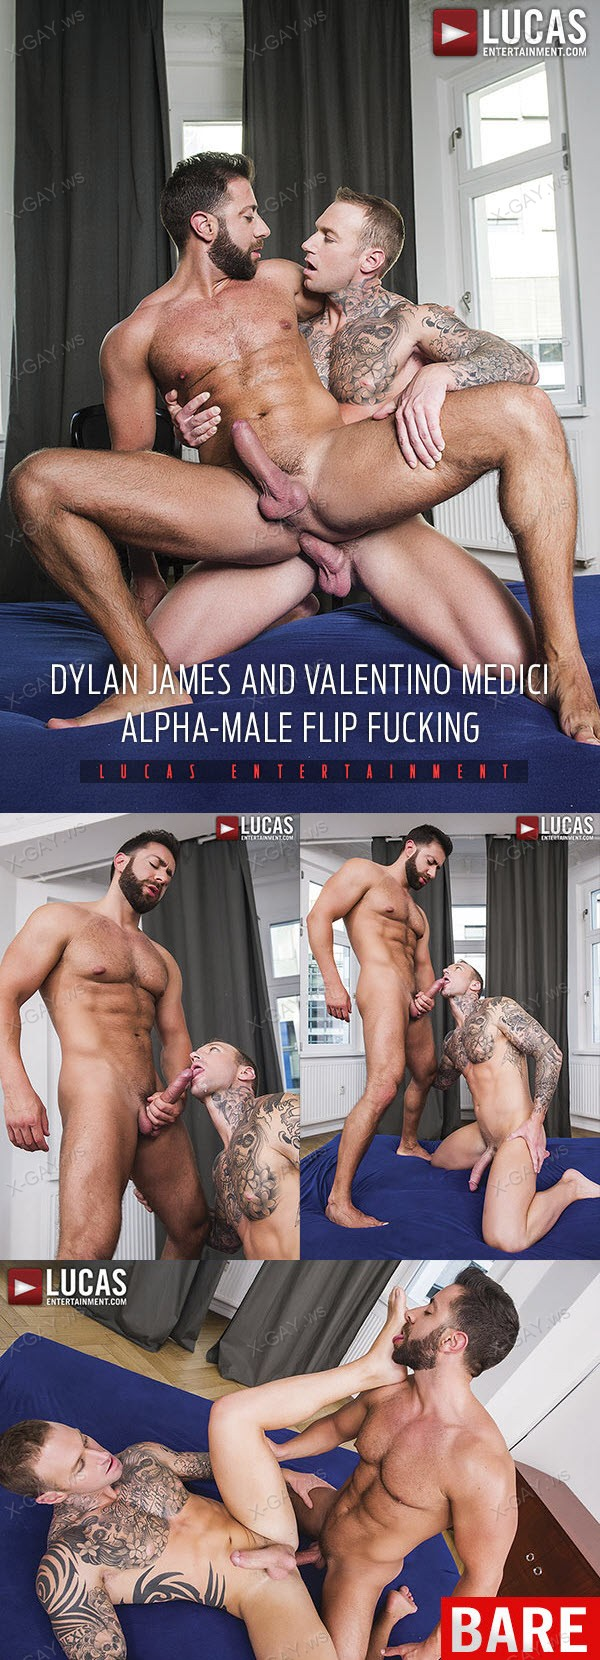 LucasEntertainment: Dylan James, Valentino Medici (Alpha Male Flip Fucking) (RAW DVD)